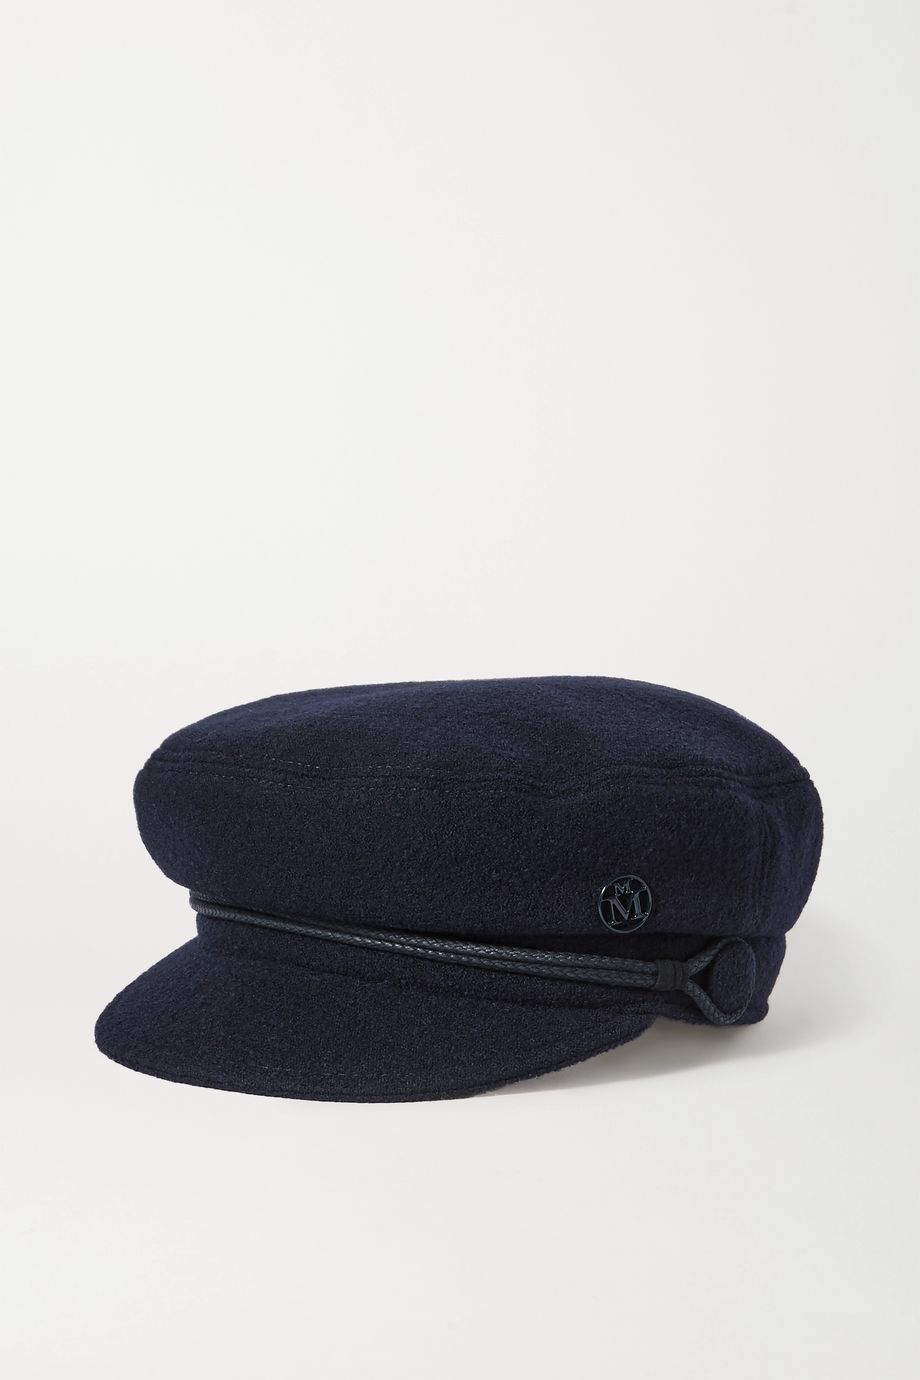 Maison Michel New Abby embellished wool cap